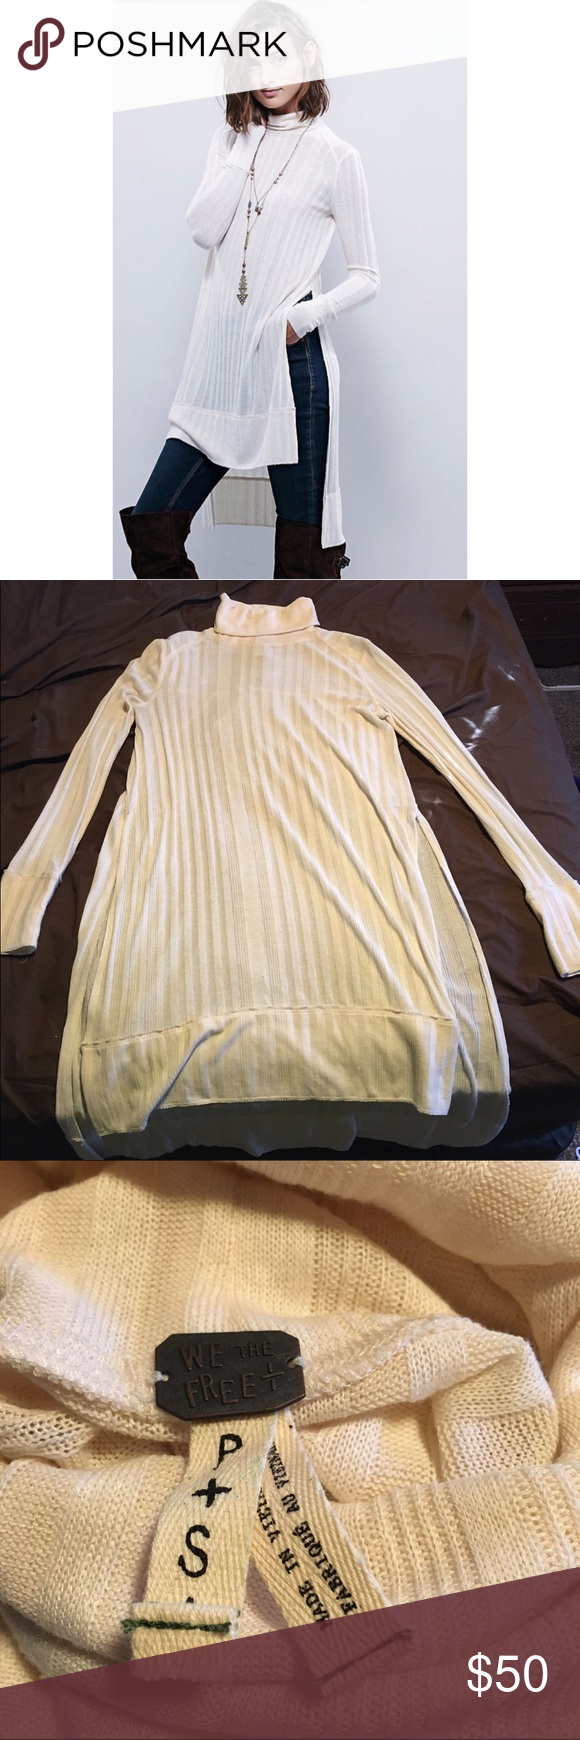 We the Free Espresso Top in Ivory A fun, lengthy tunic top featuring a turtle neck, long slits, and a ribbed texture. EUC, perfect to layer for fall and winter! Free People Tops Tunics